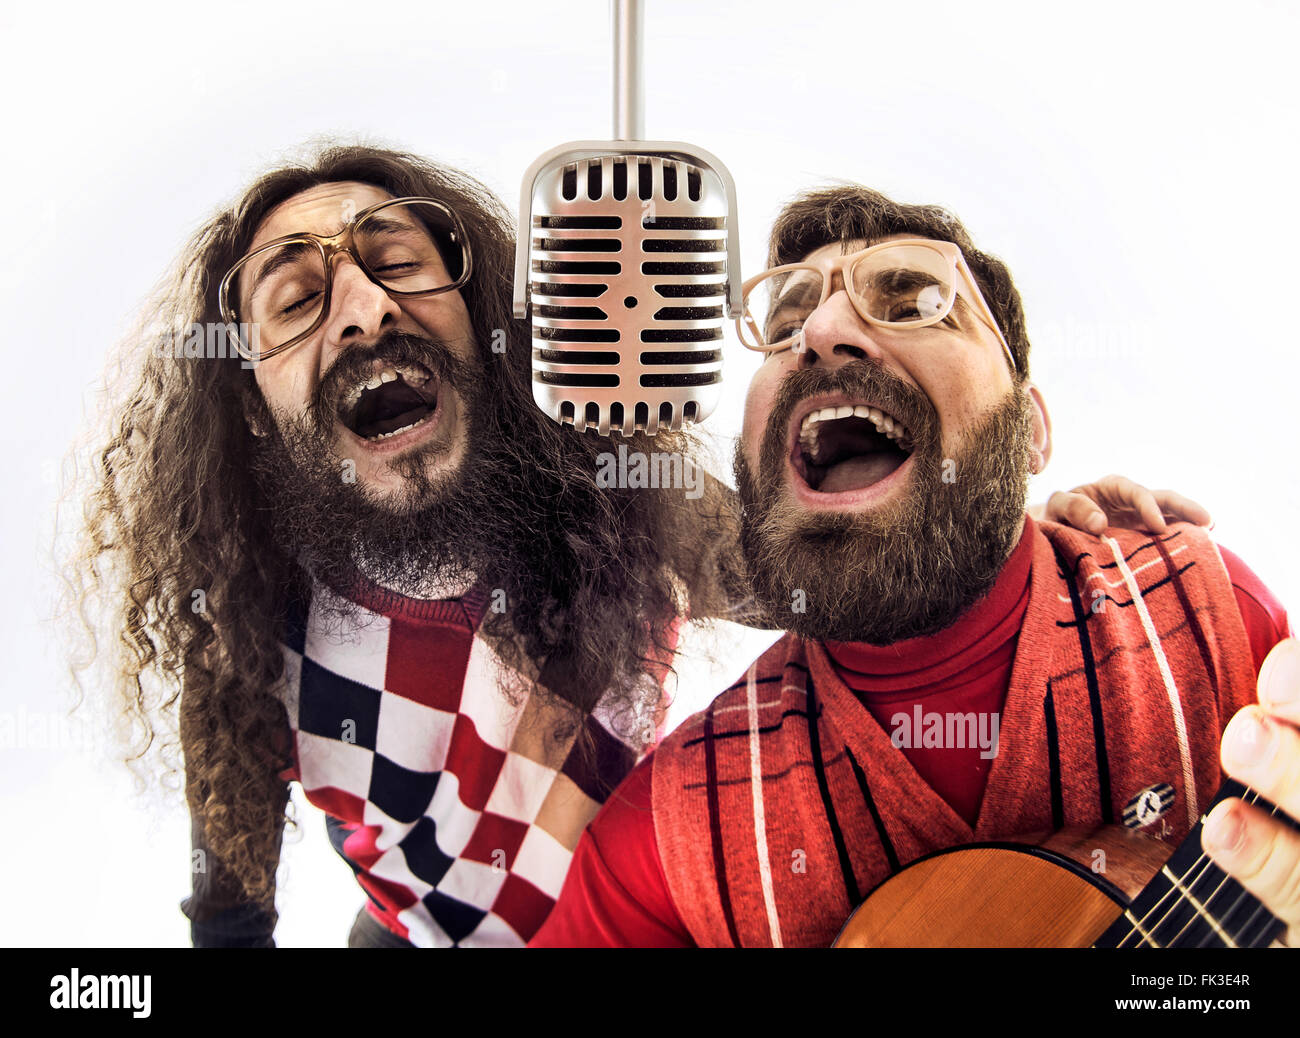 Two nerdy boys singing together - Stock Image